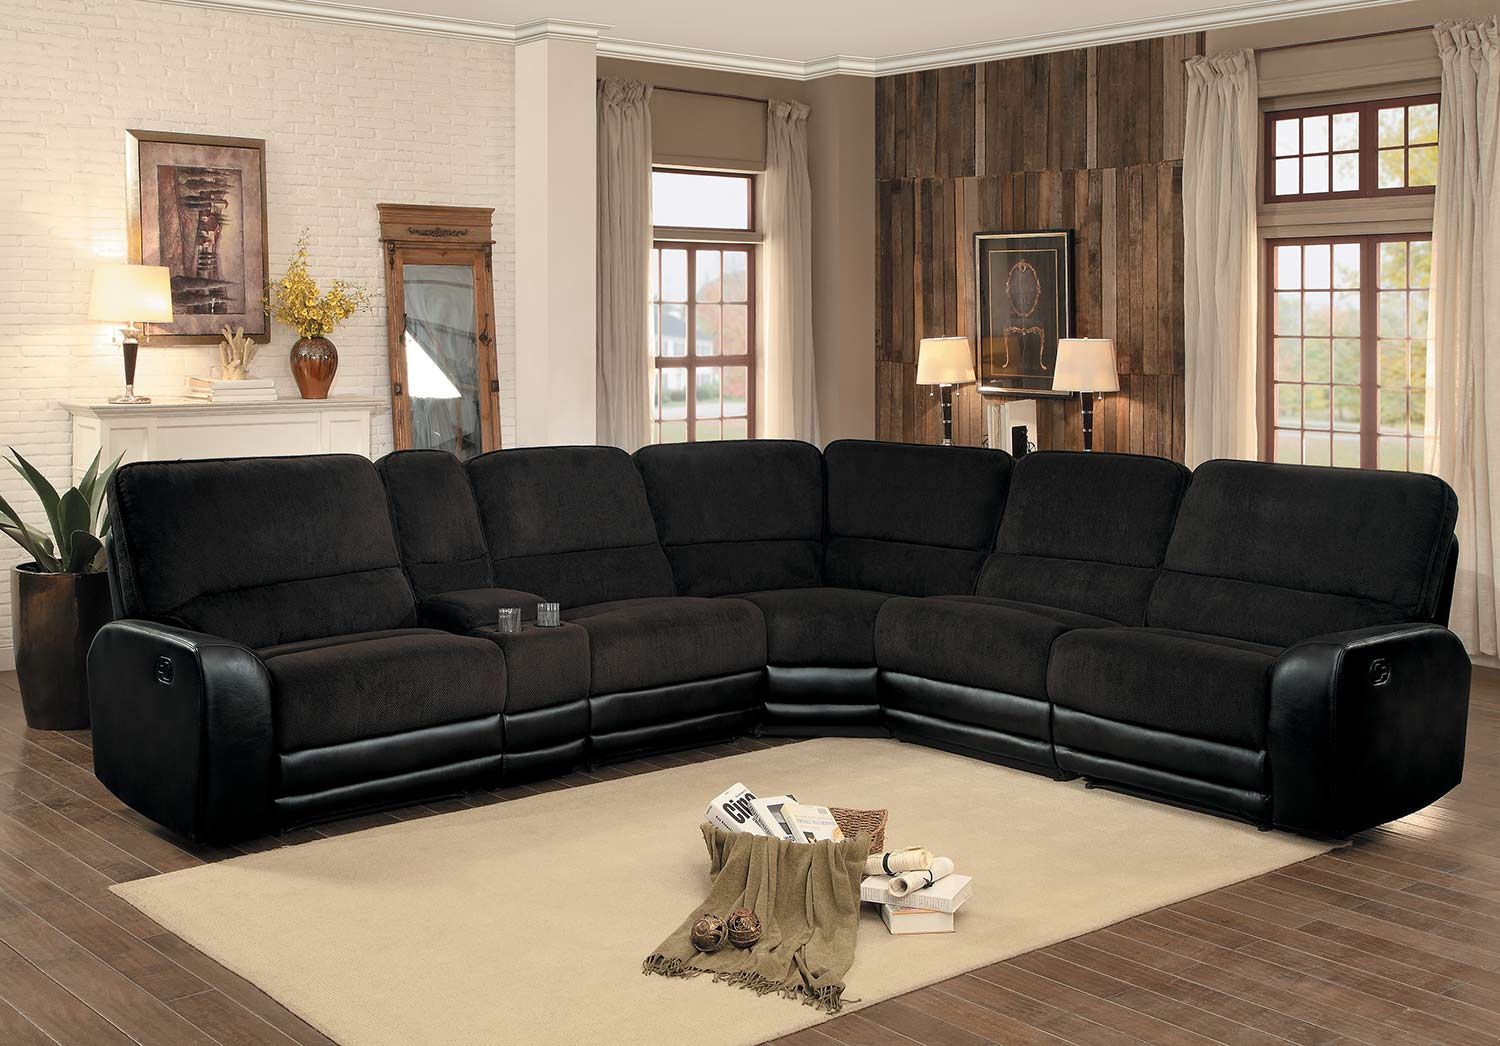 Homelegance Ynez Reclining Sectional Set - Chocolate Fabric/Leather Gel